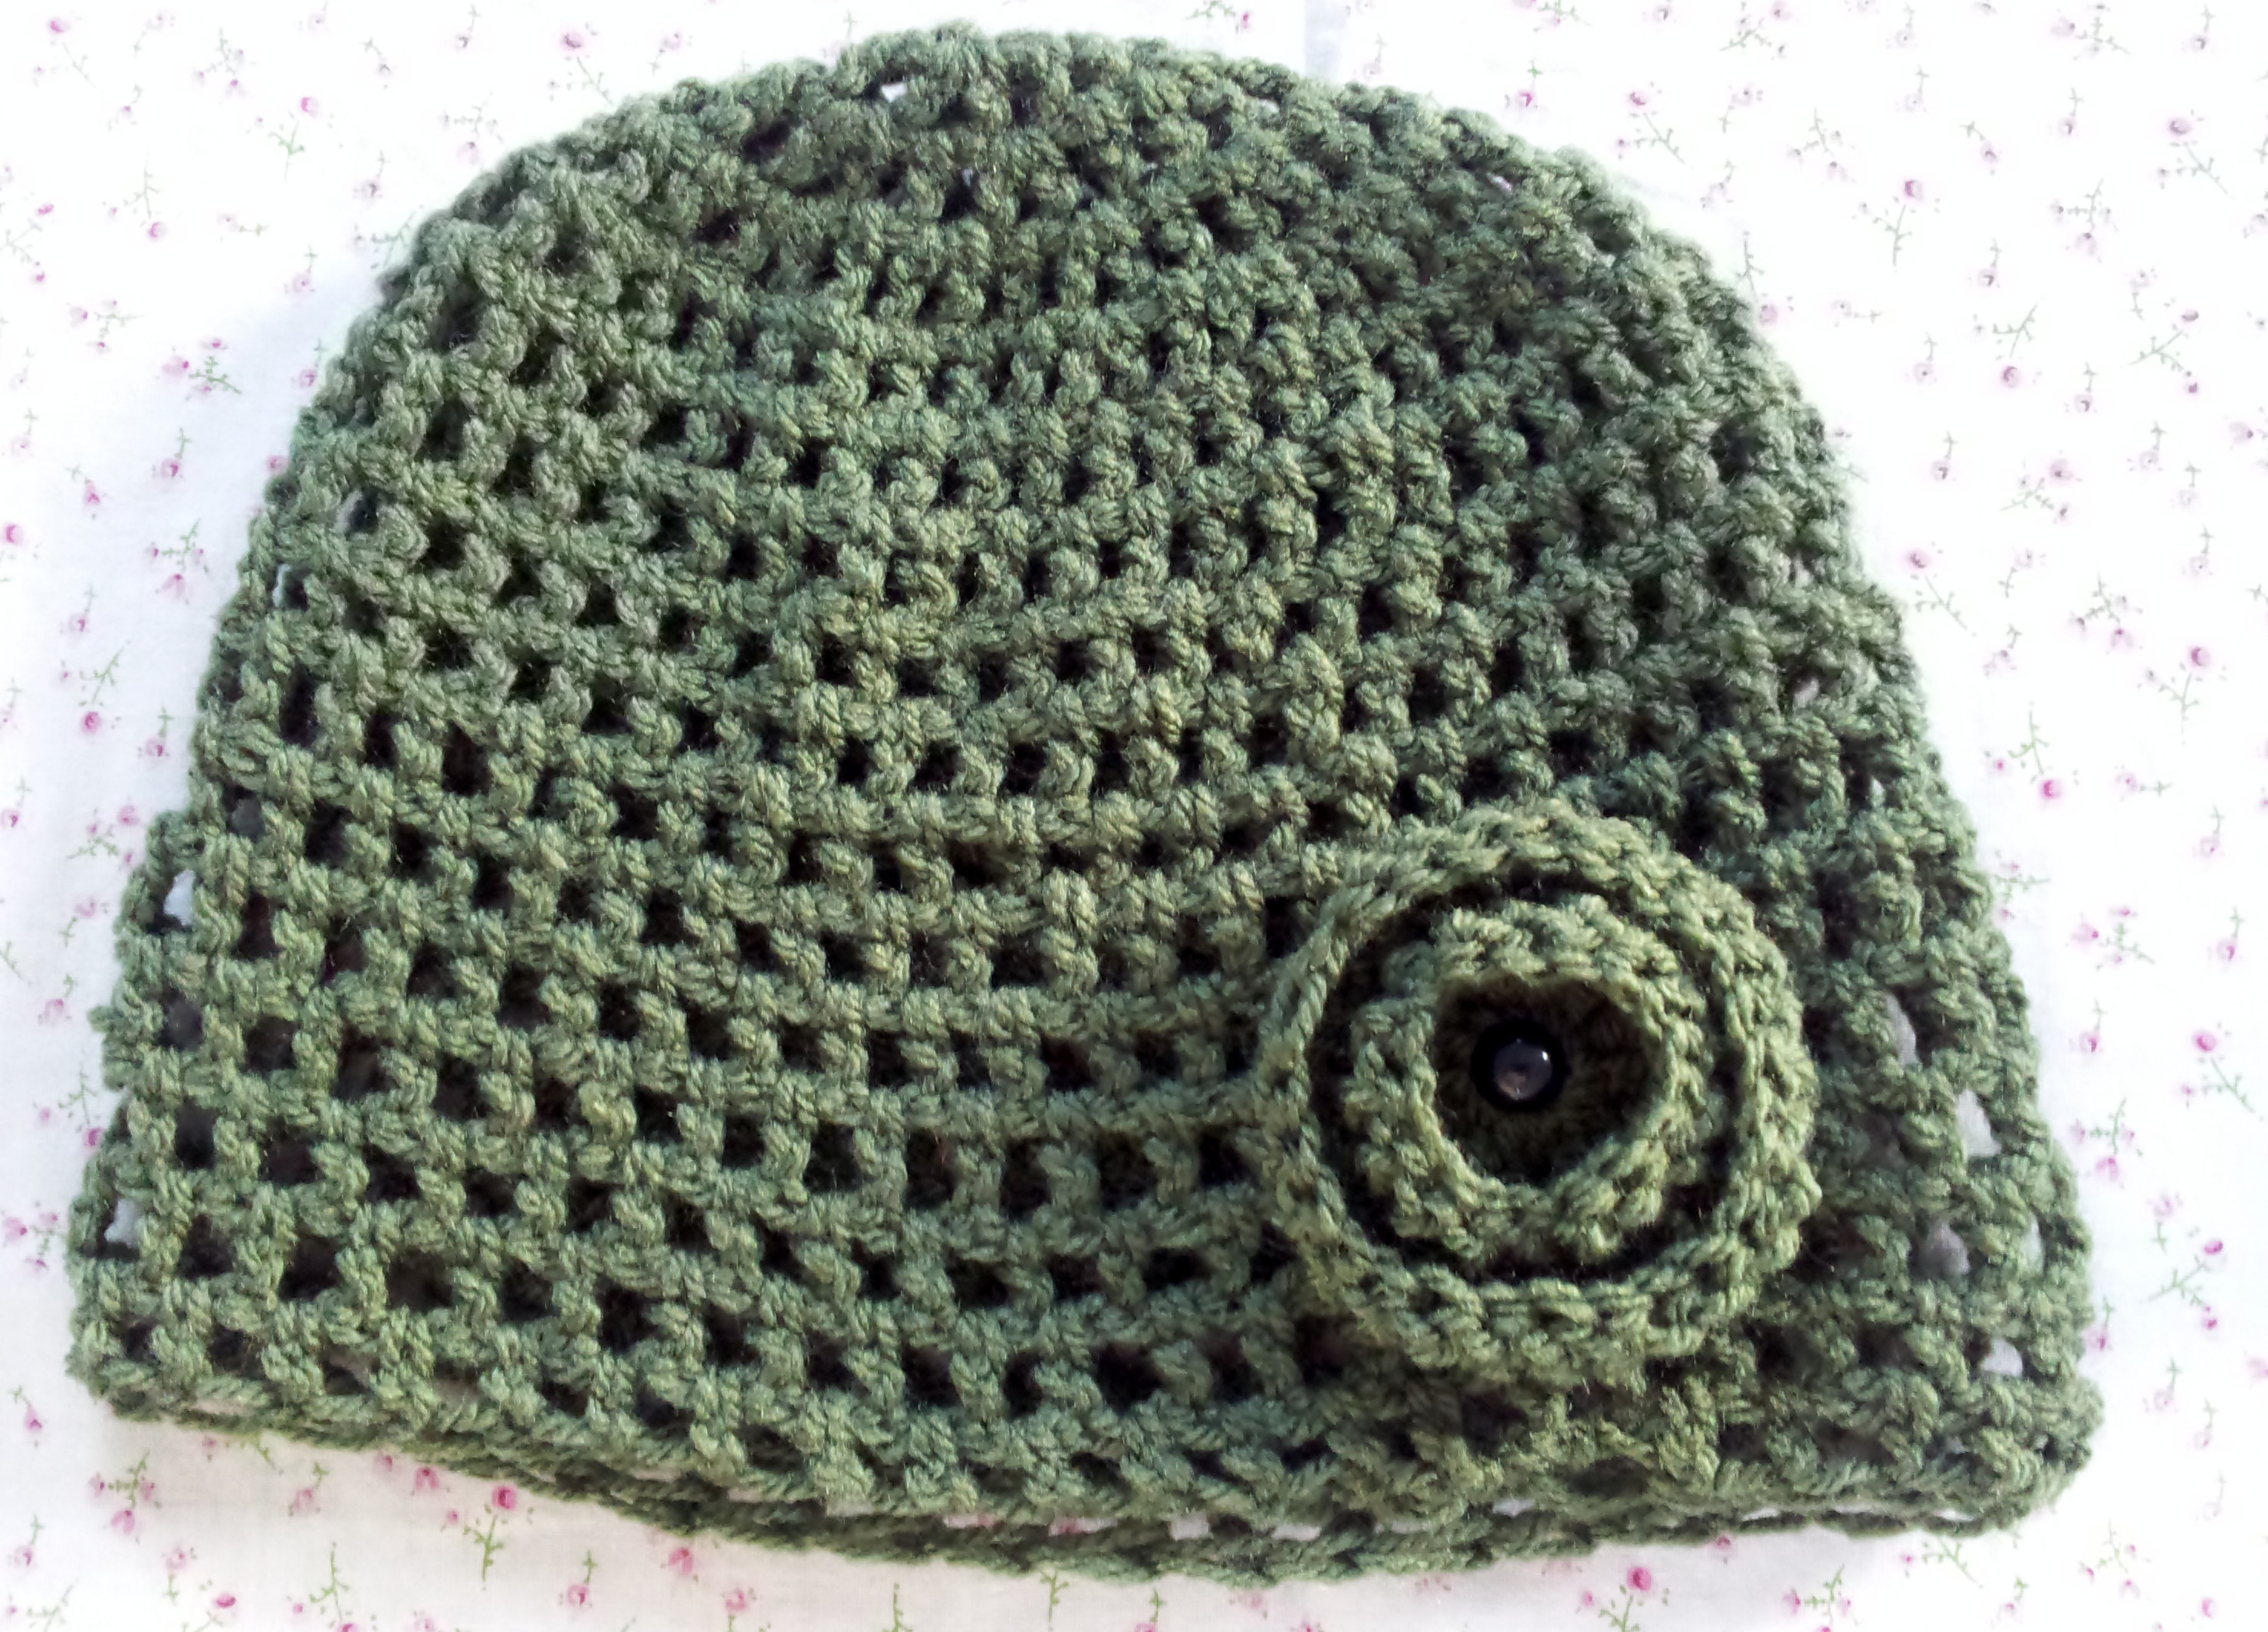 Inspirational How to Make A Simple Crochet Hat – Free Pattern Easy Crochet Beanie Pattern Of Awesome A Variety Of Free Crochet Hat Patterns for Making Hats Easy Crochet Beanie Pattern